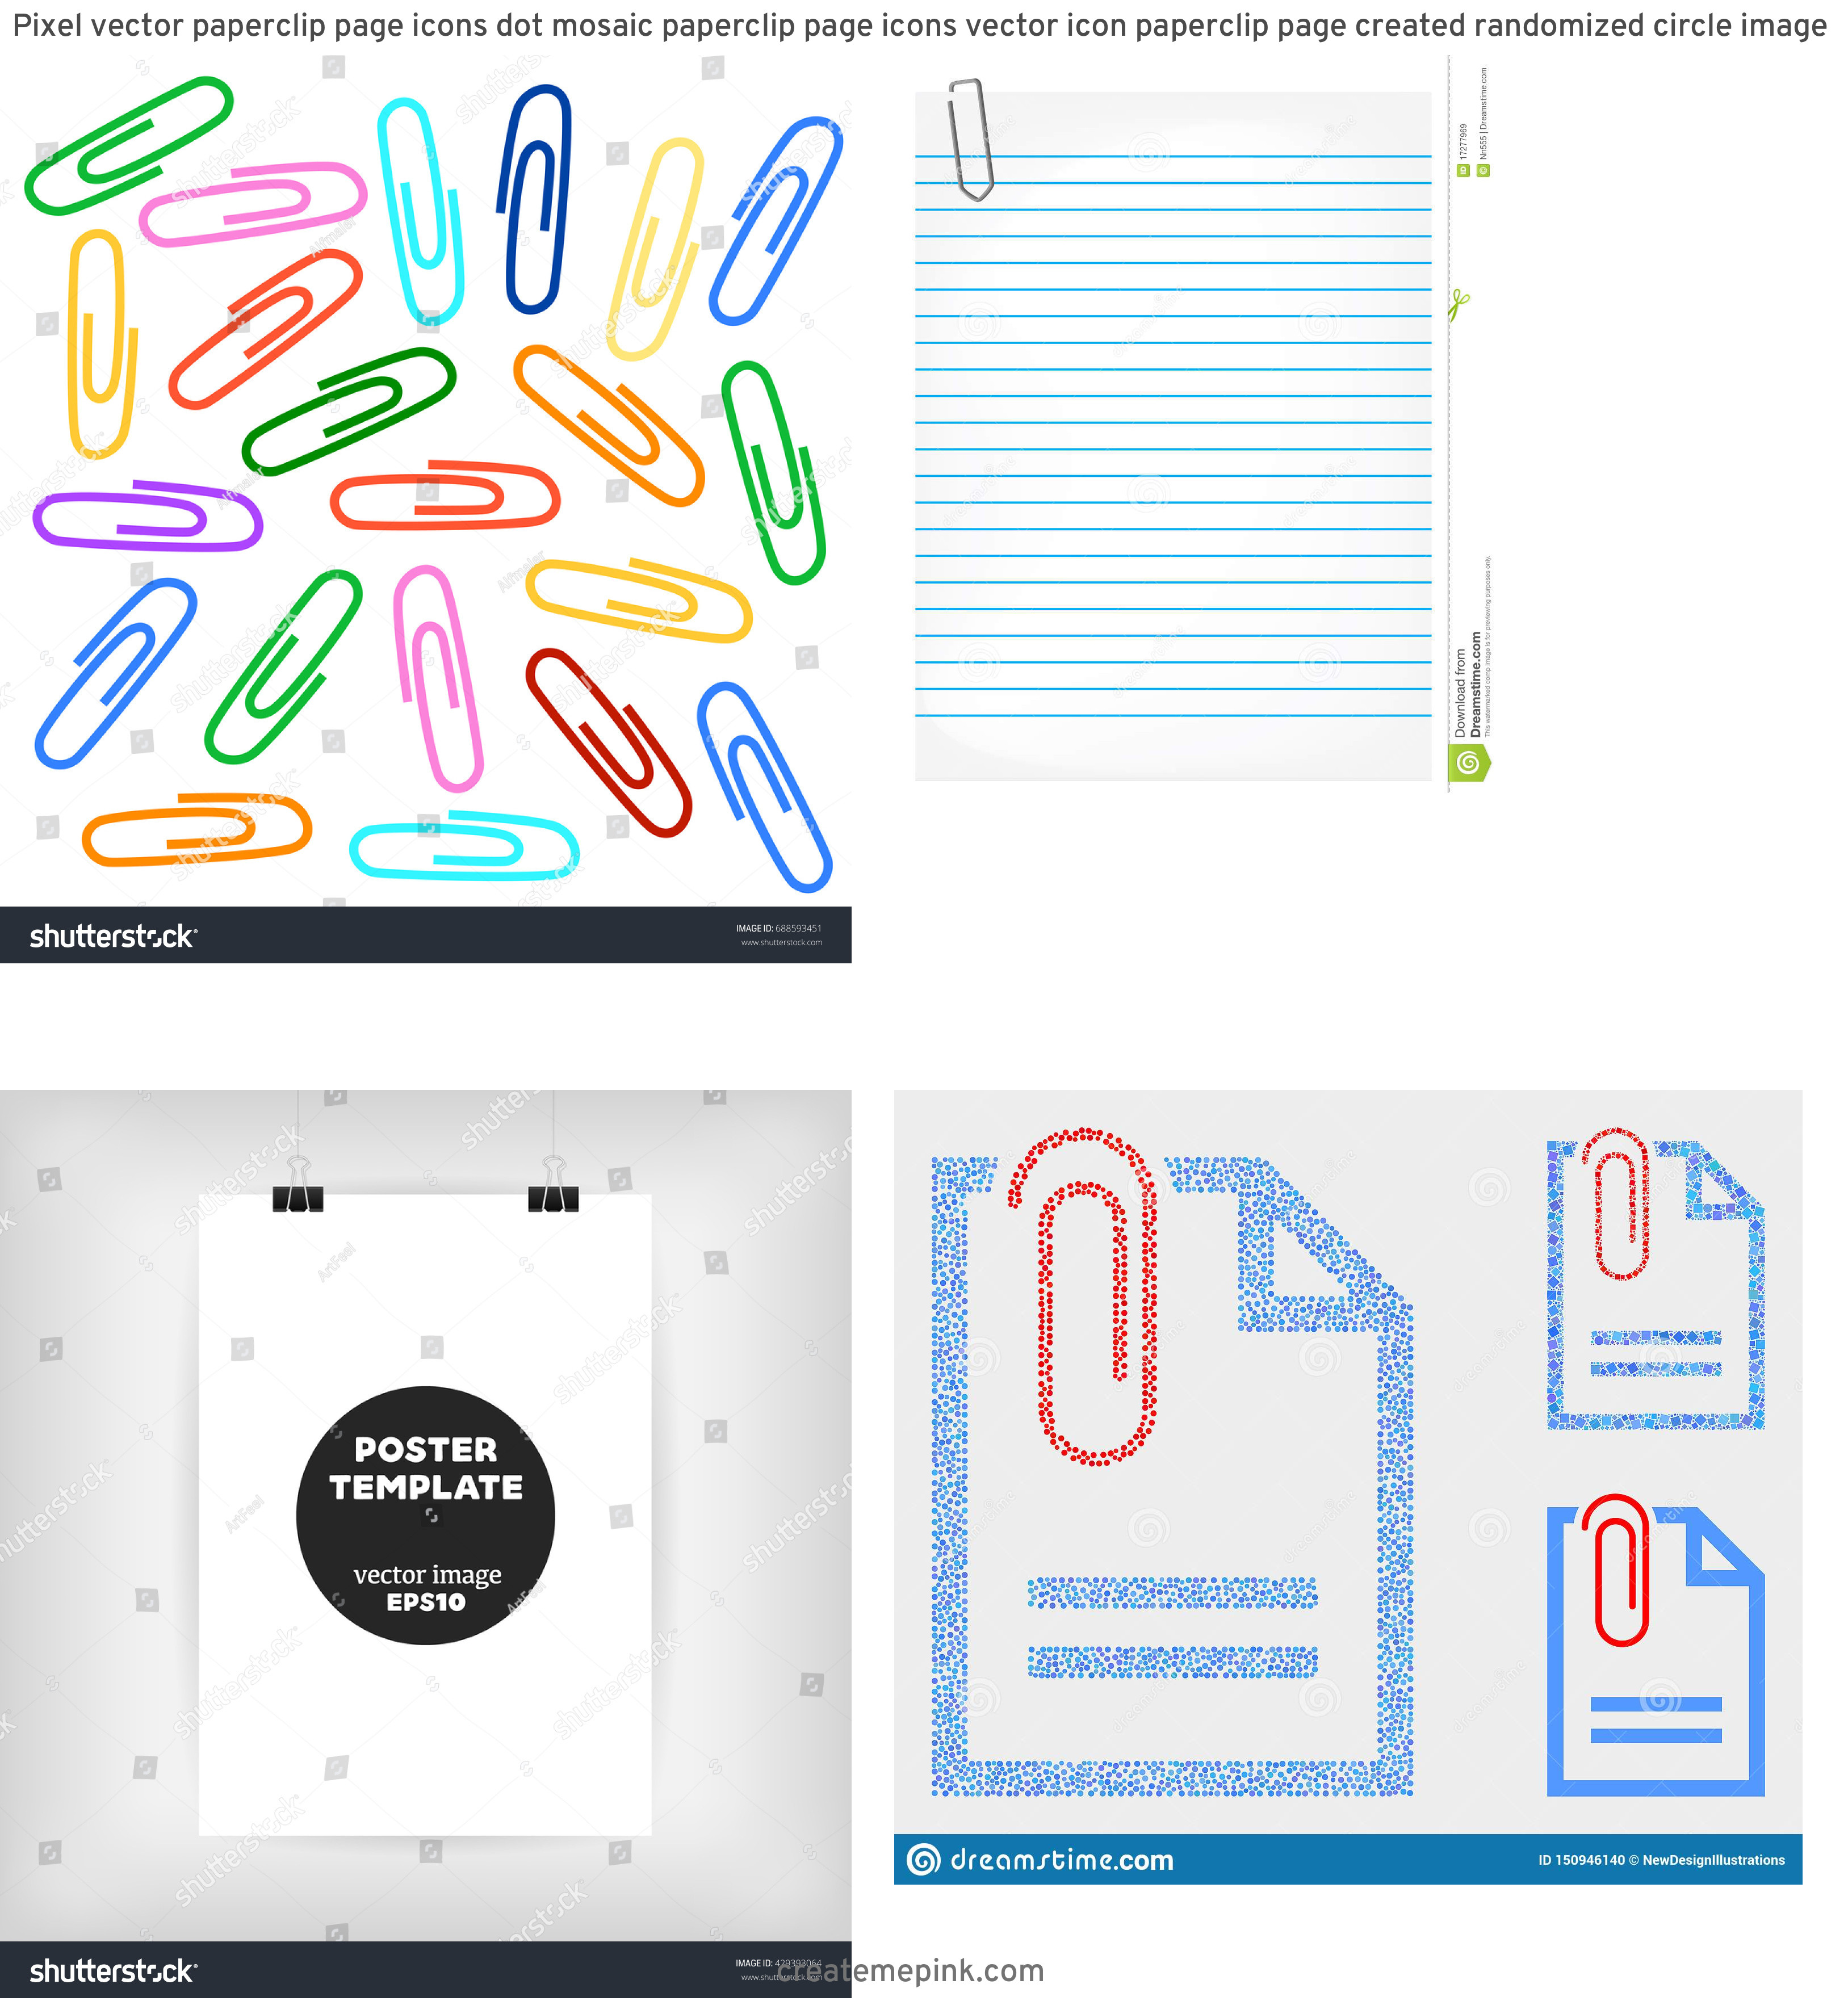 Vector Paper Clip On Page: Pixel Vector Paperclip Page Icons Dot Mosaic Paperclip Page Icons Vector Icon Paperclip Page Created Randomized Circle Image